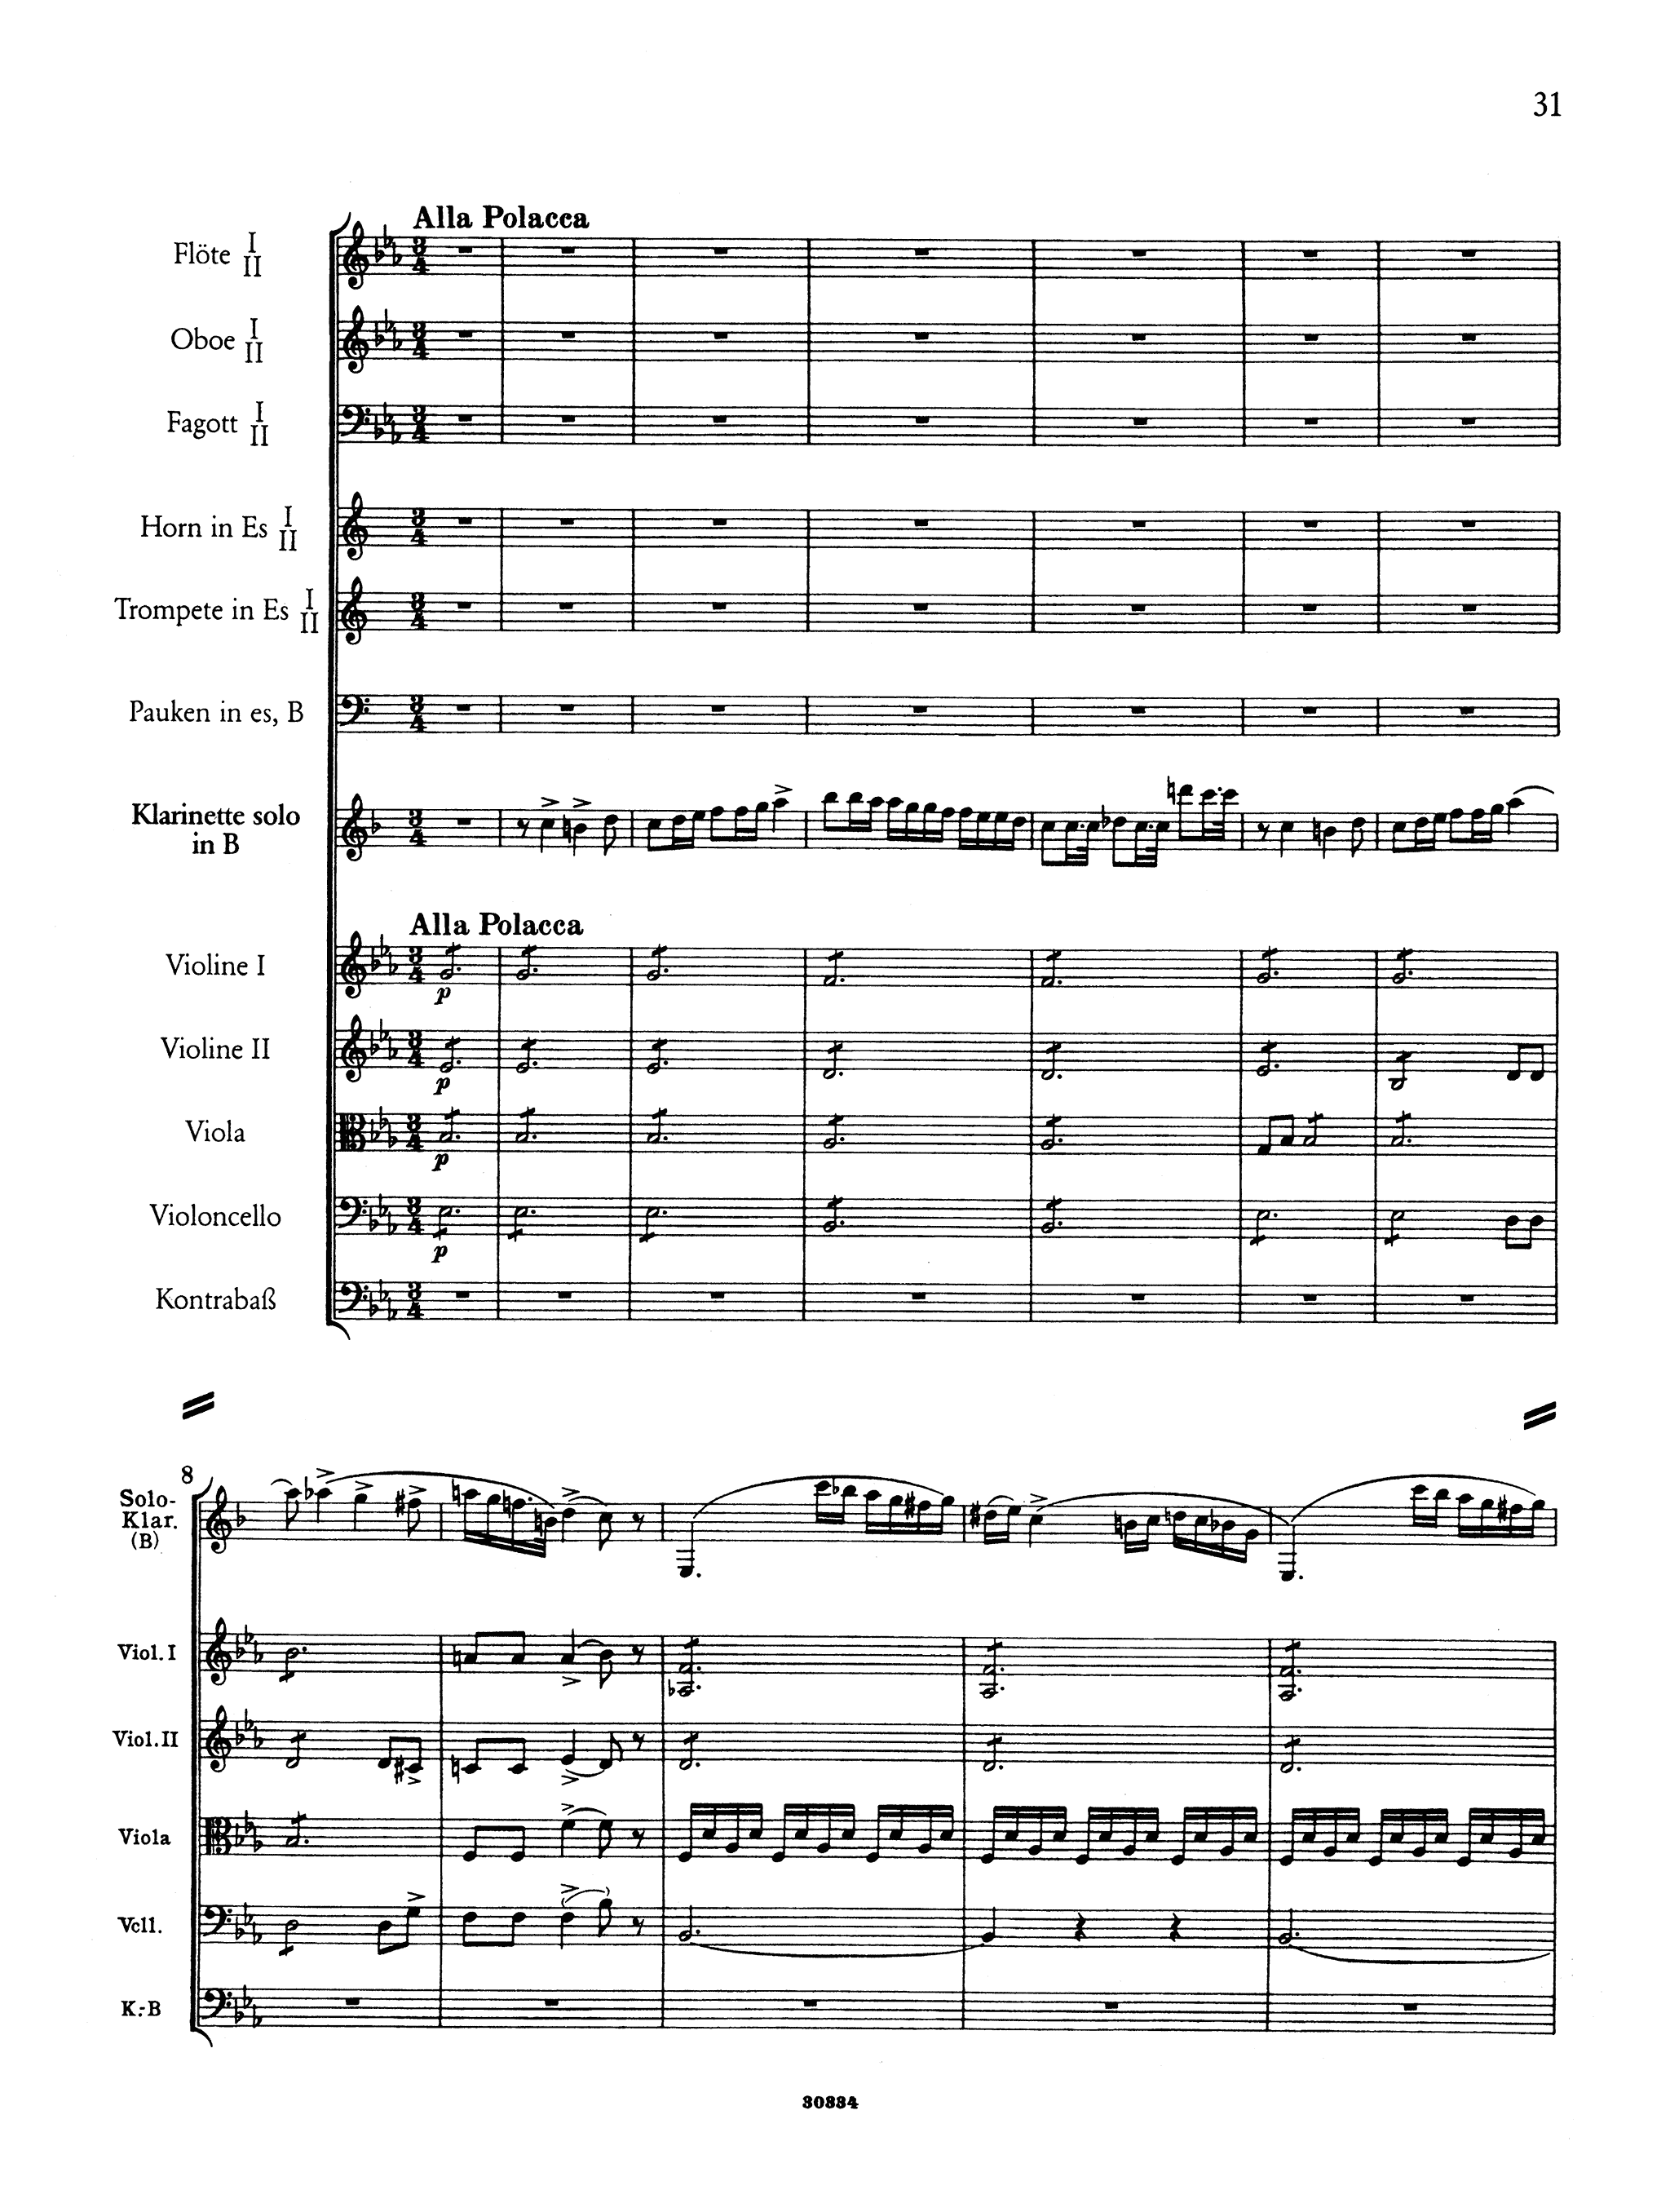 Clarinet Concerto No. 2, Op. 74 Full Score - Movement 3